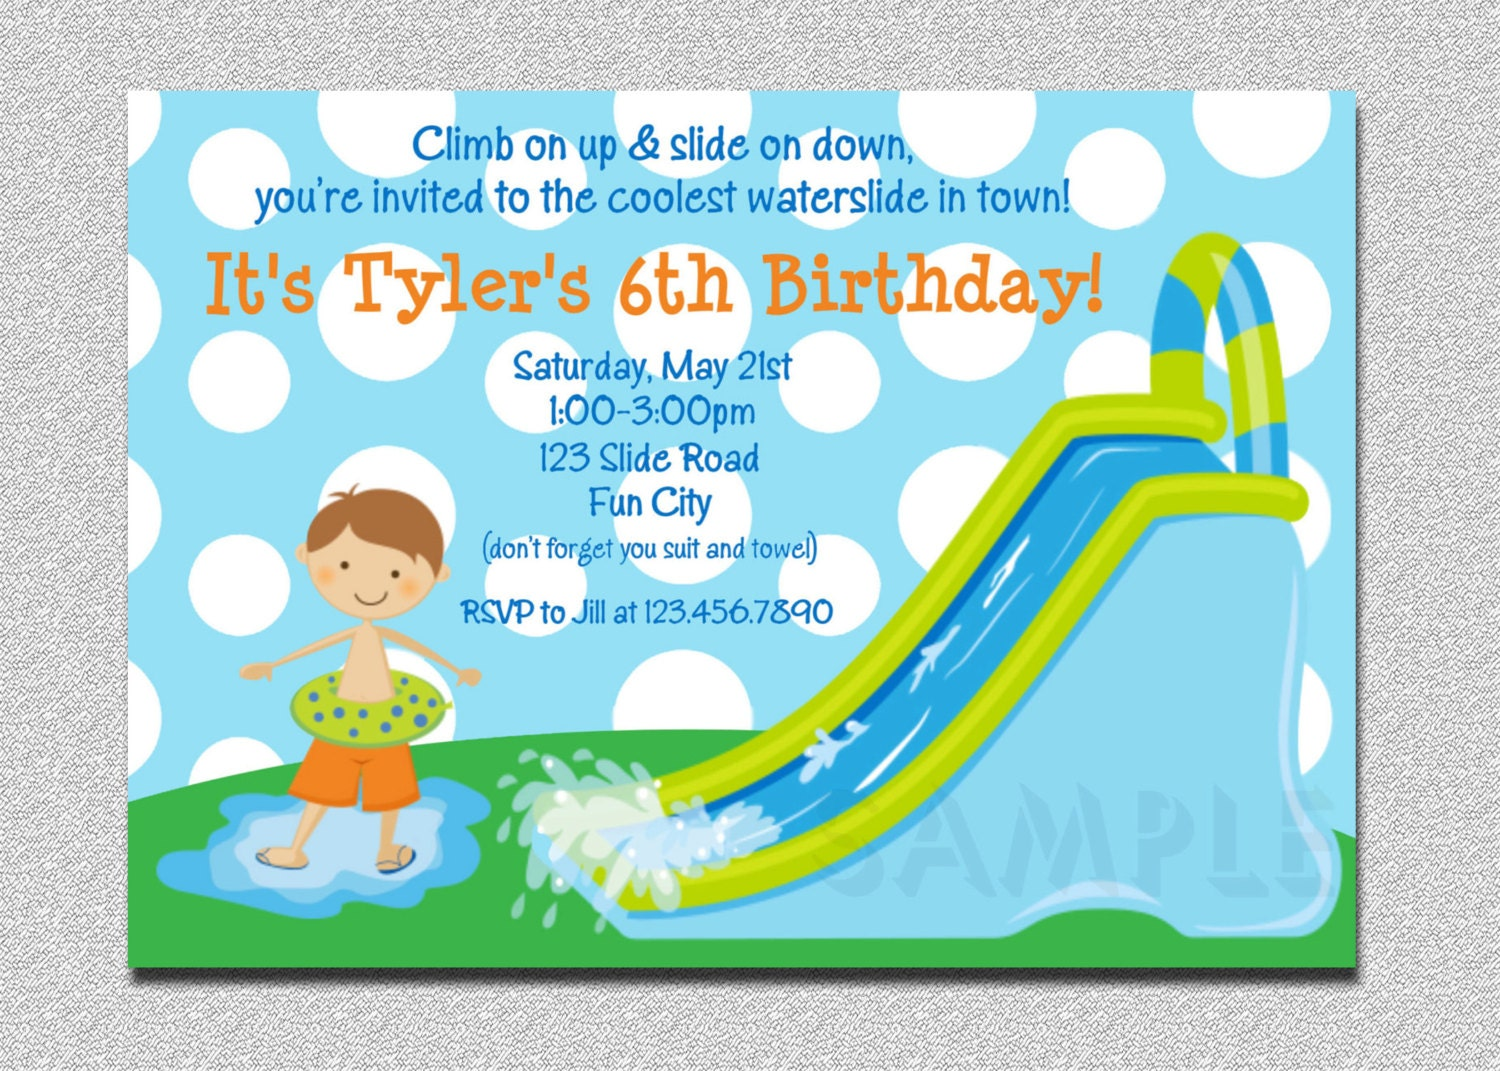 waterslide birthday invitations water slide birthday party, Party invitations